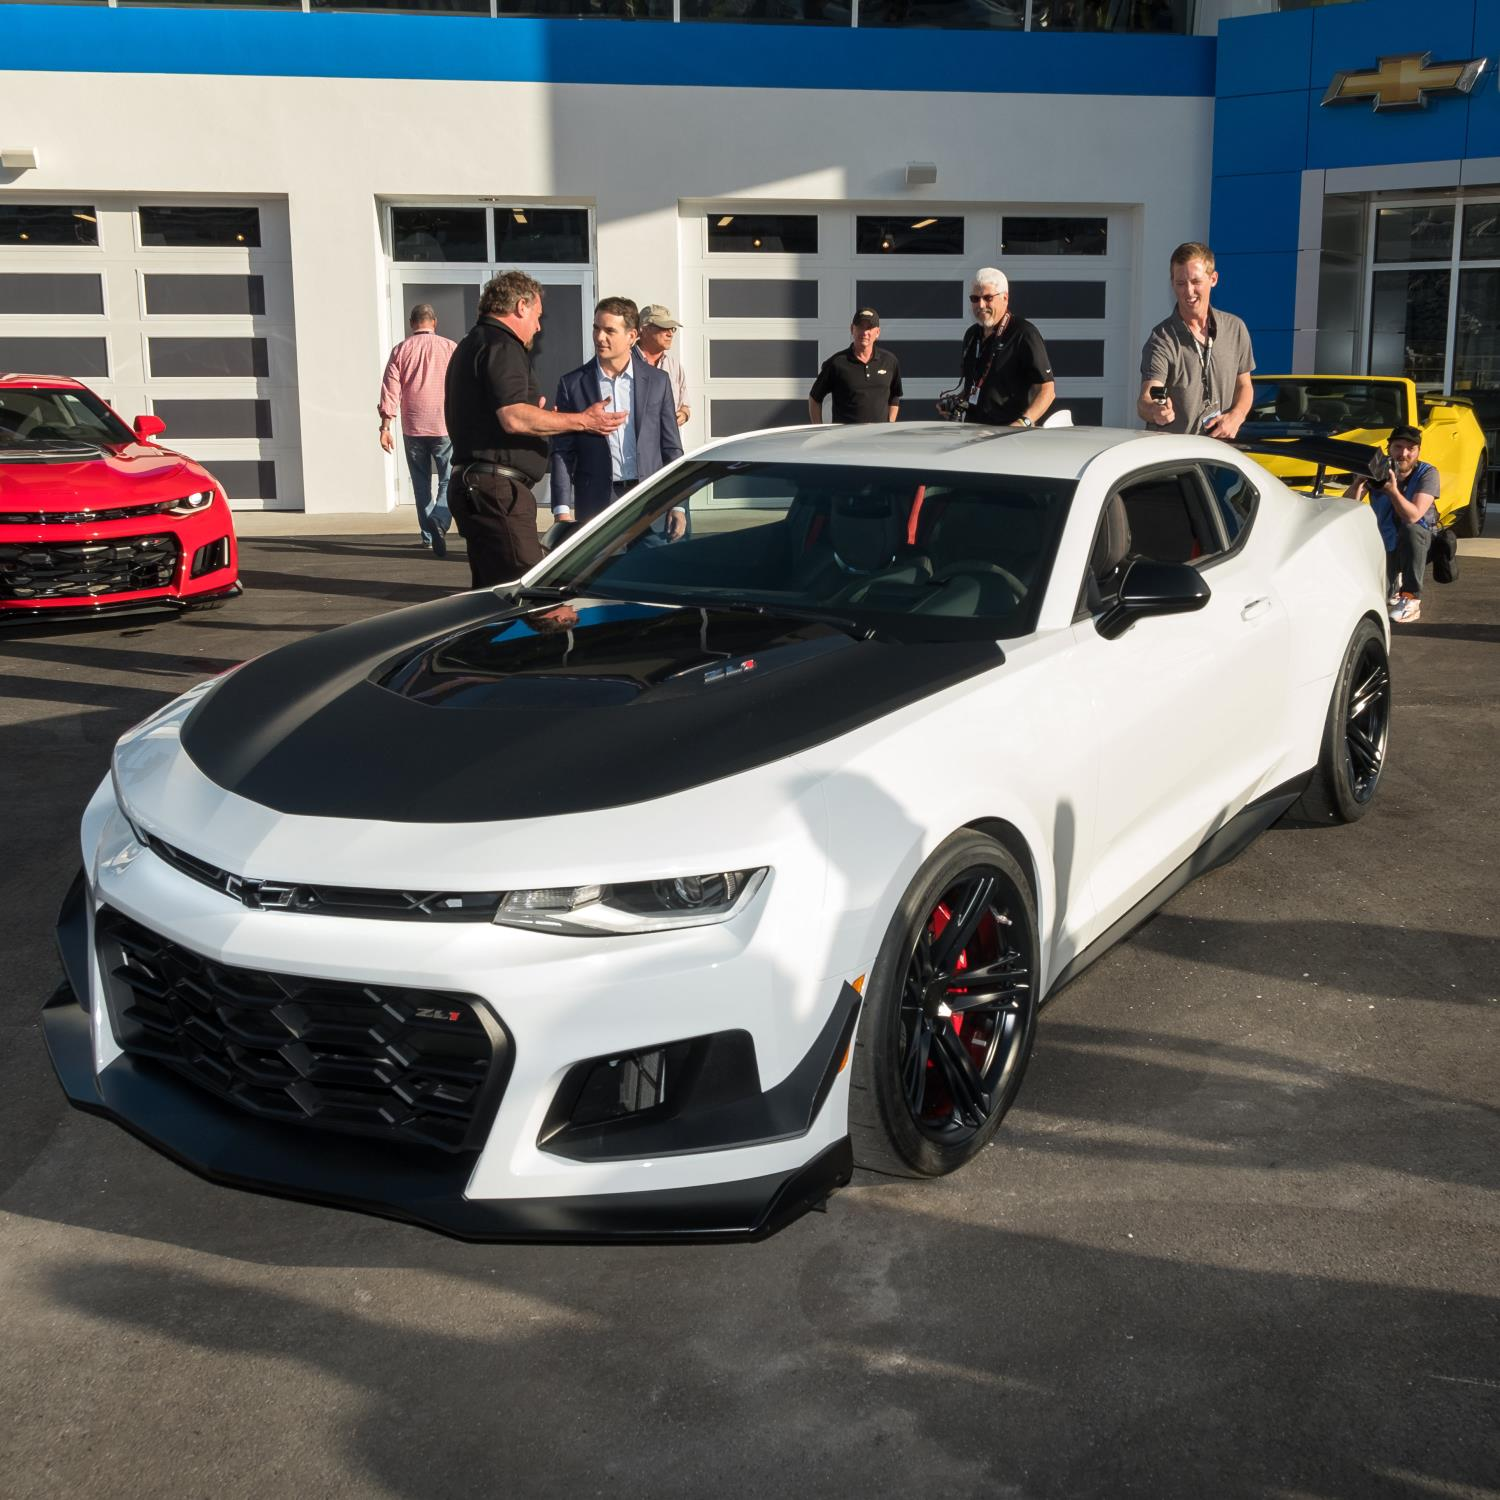 Official: 2018 Chevrolet Camaro ZL1 1LE - GTspirit